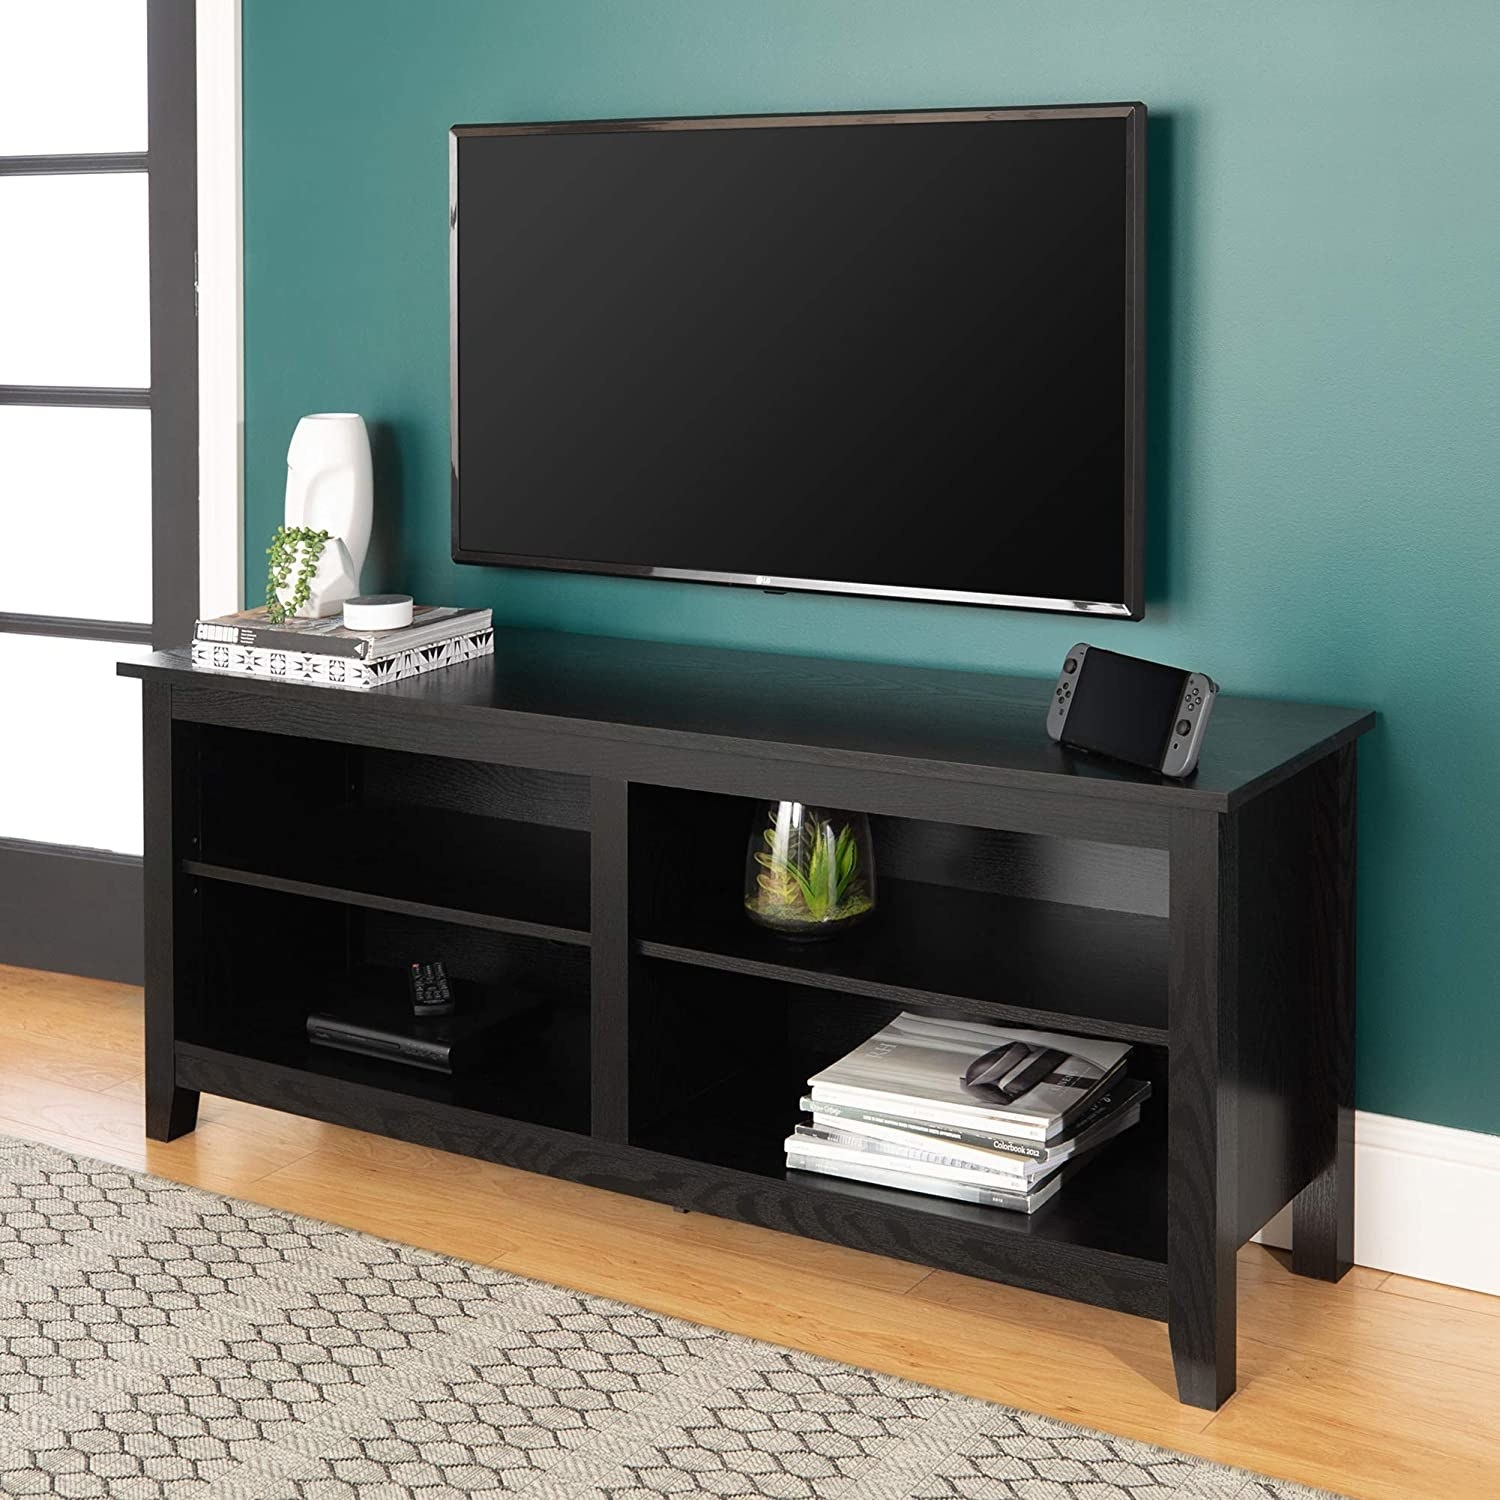 The storage console in black with four shelves filled with assorted things